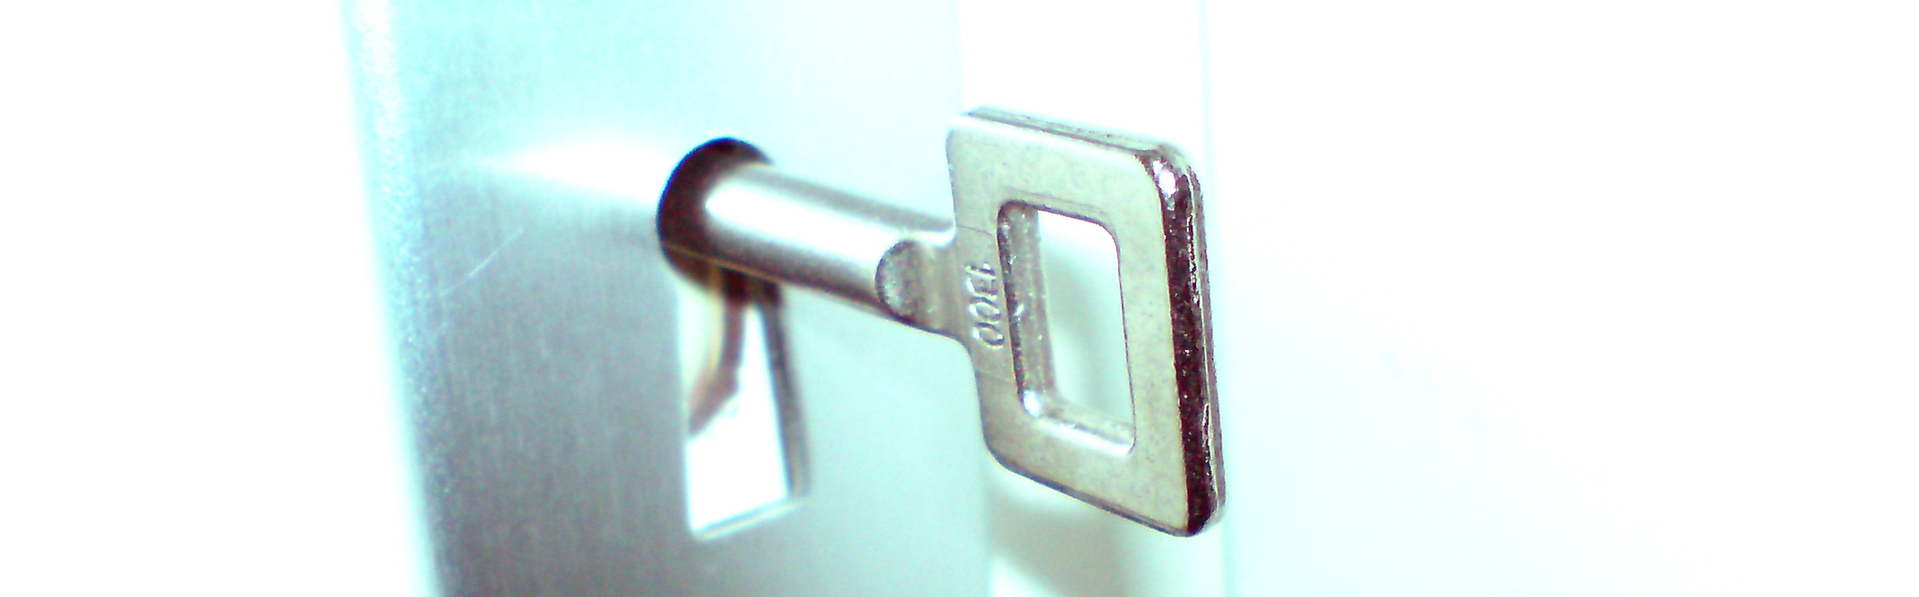 lock and key locksmith products on light background